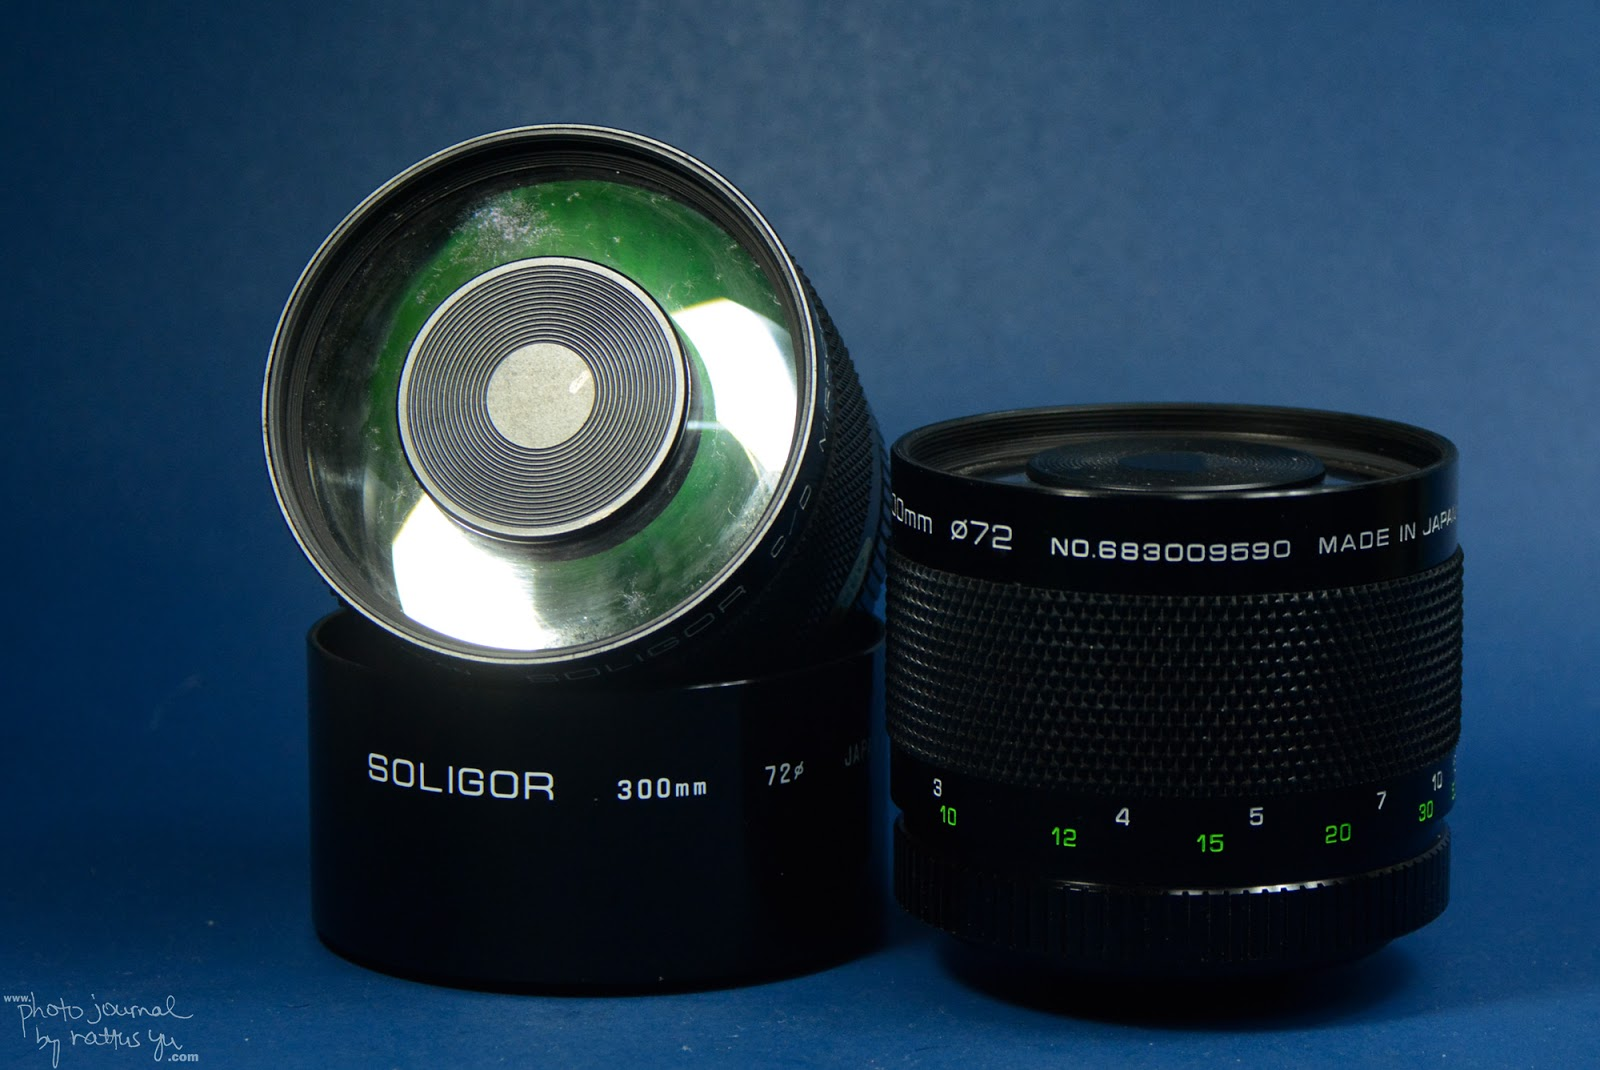 Shootout for the Soligor C/D 300mm f/5.6 (Mirror Lens by Komine)